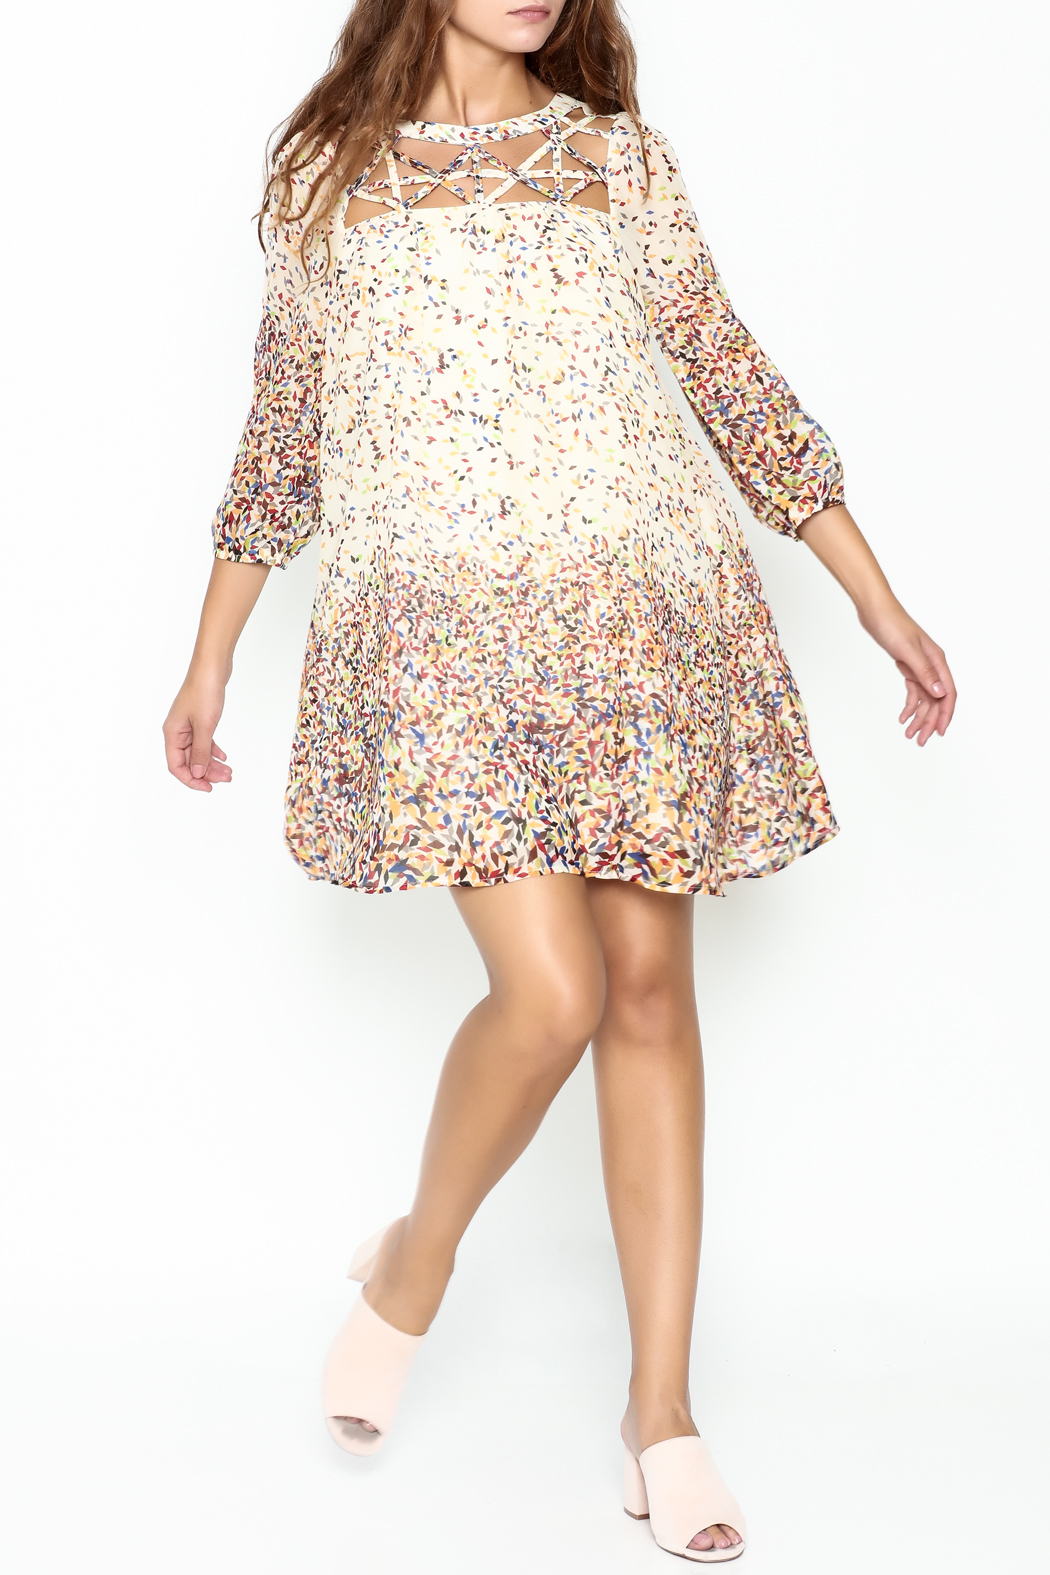 KORI AMERICA Confetti Dress - Side Cropped Image